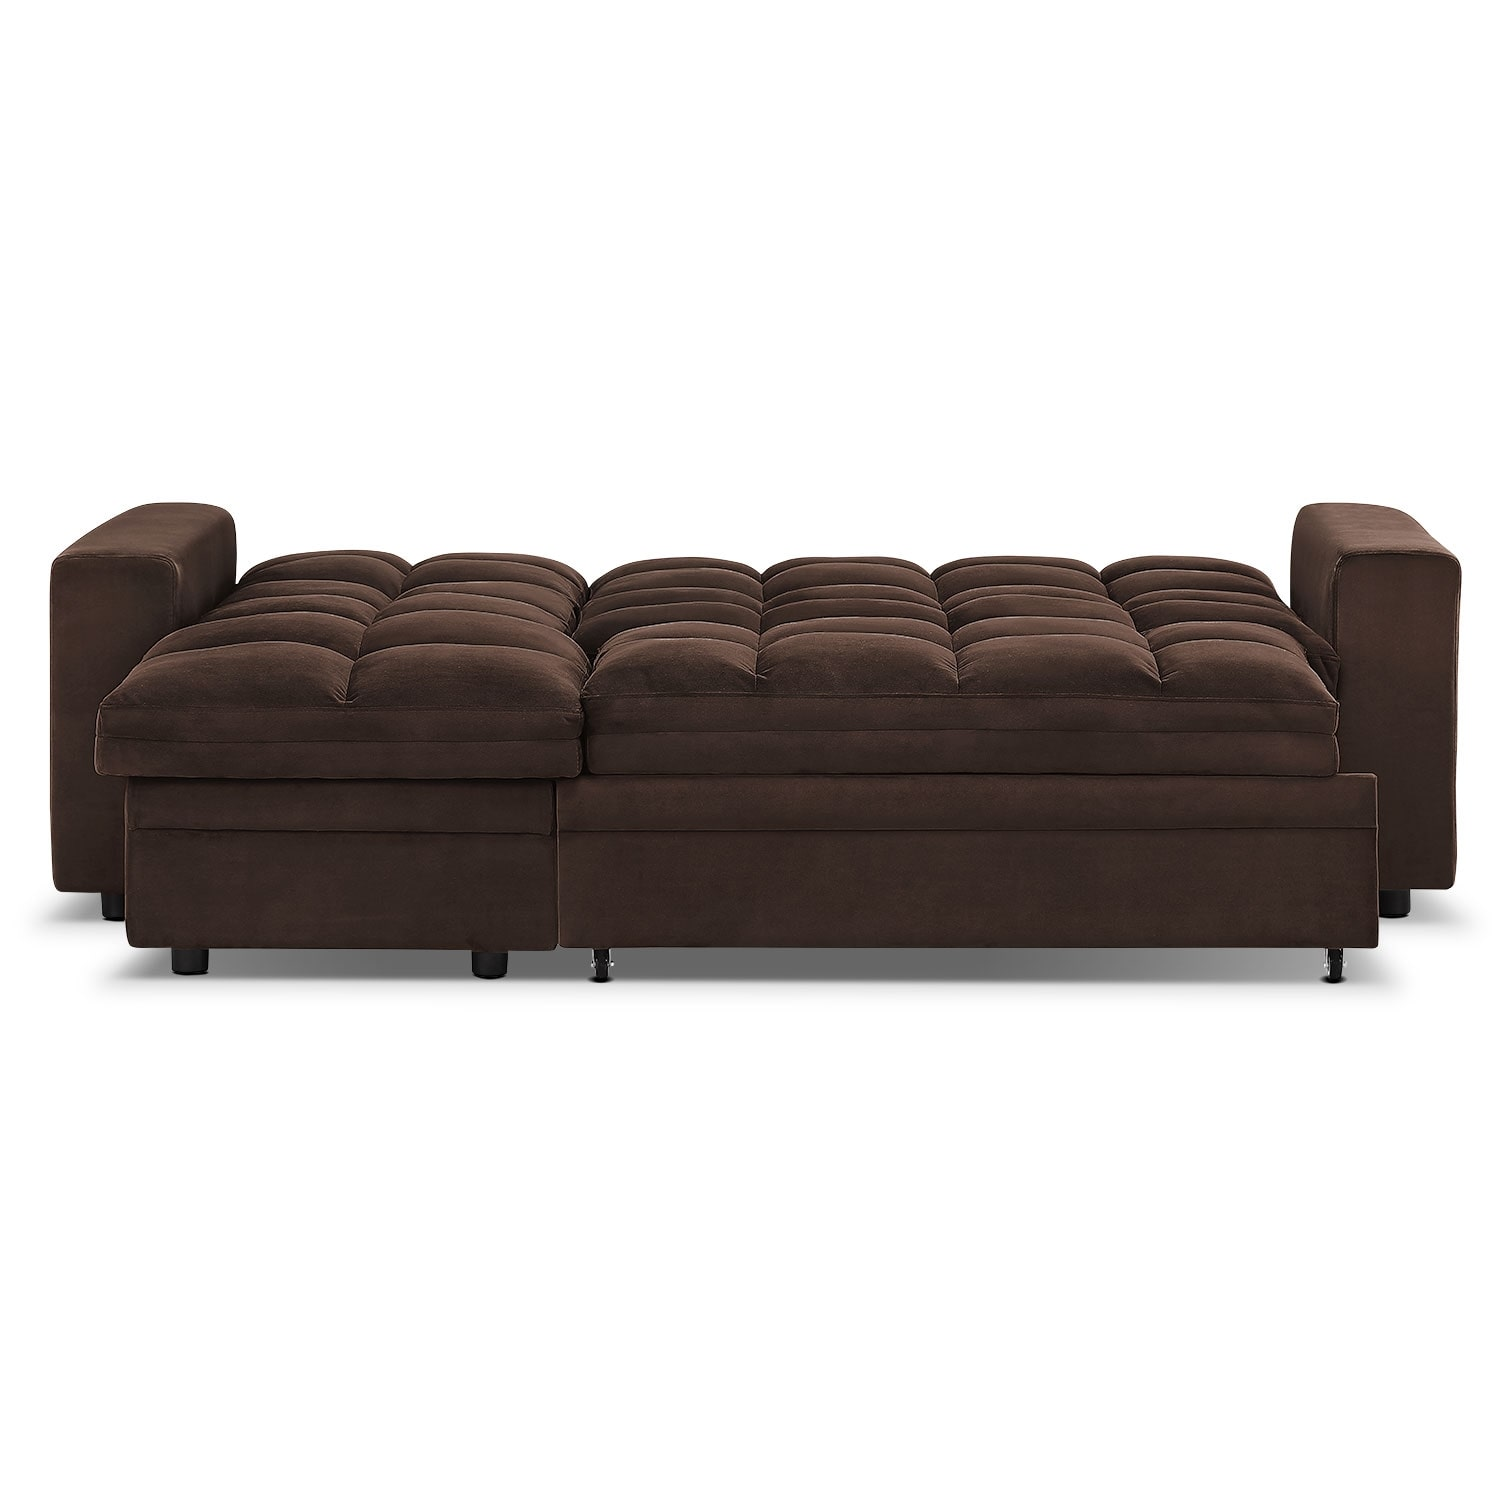 Metro 2 pc chaise sofa bed w storage american for Duke sectional sofa bed w storage